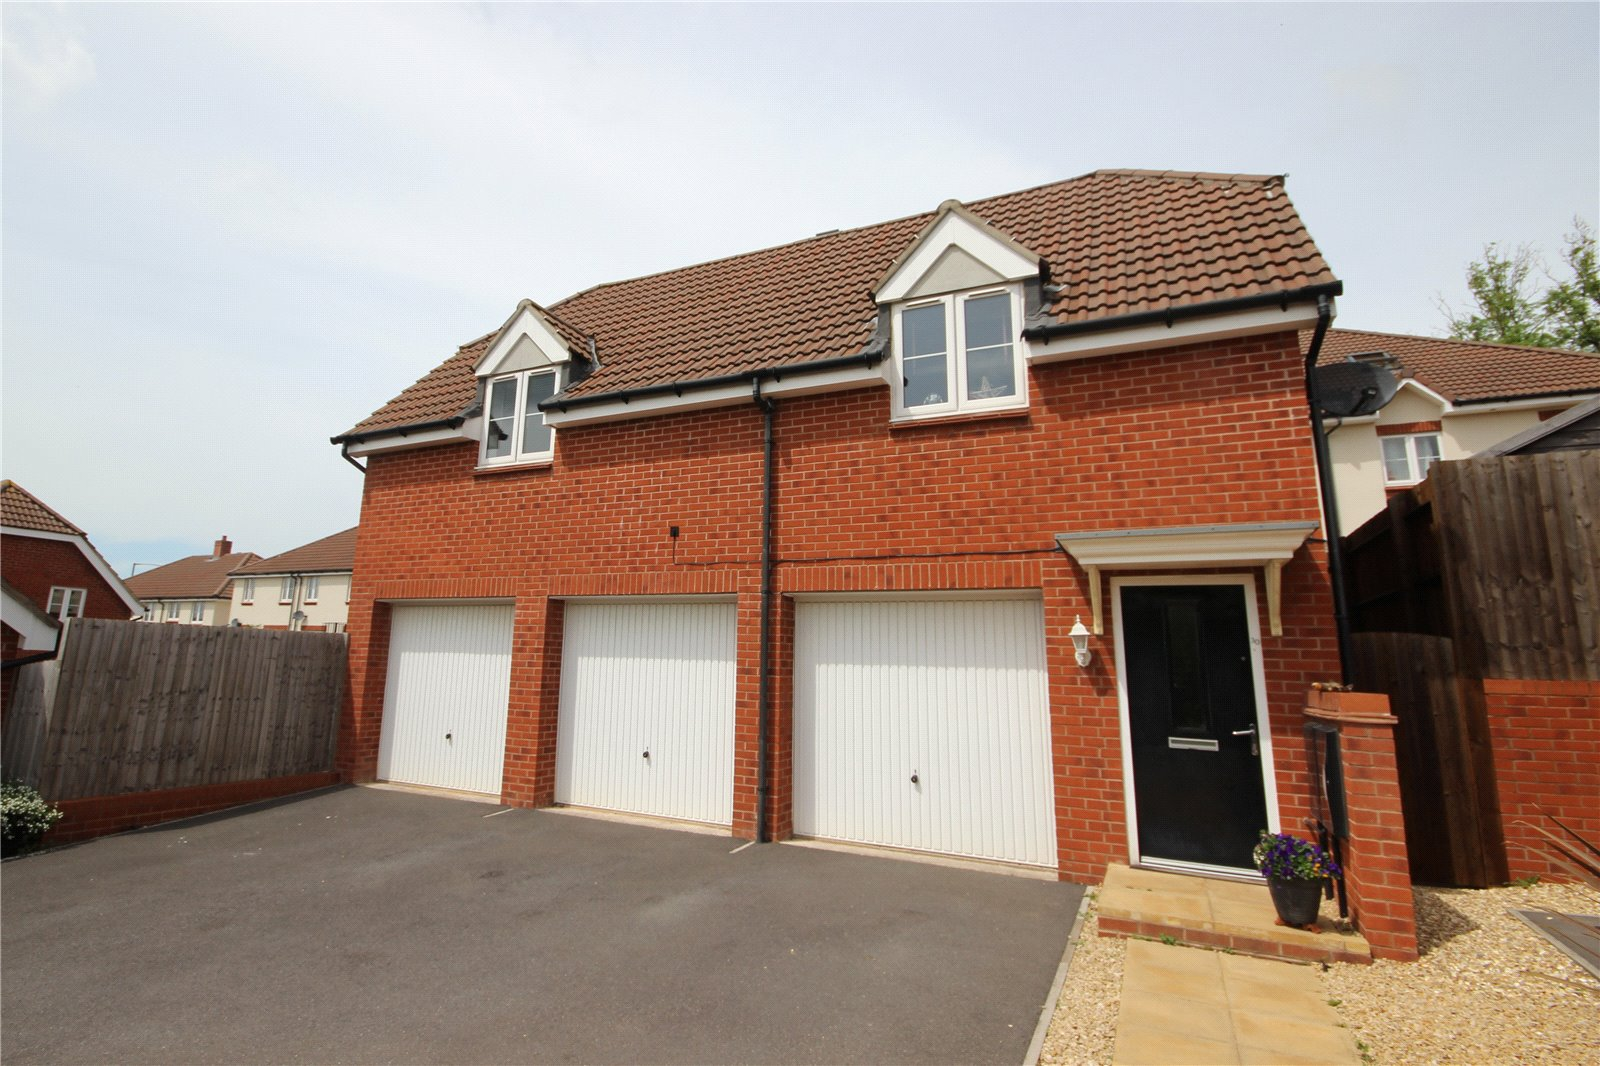 2 Bedrooms Detached House for sale in Valerian Close Shirehampton Bristol BS11